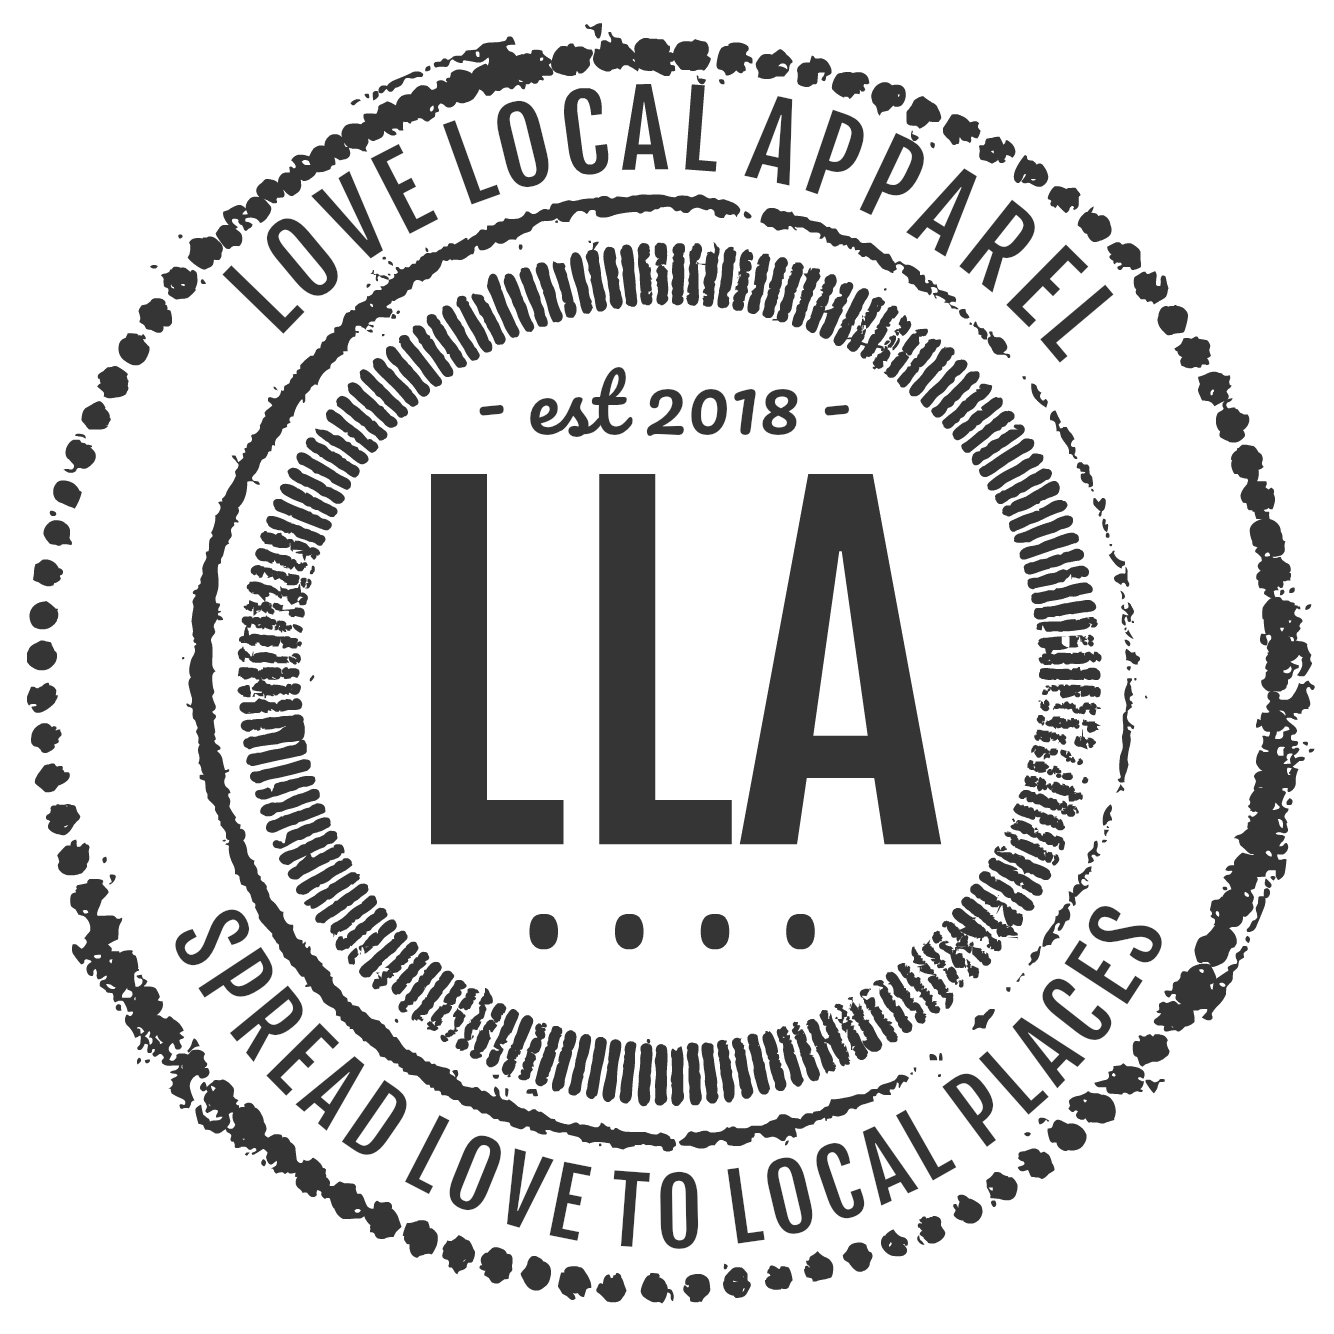 Love Local Apparel